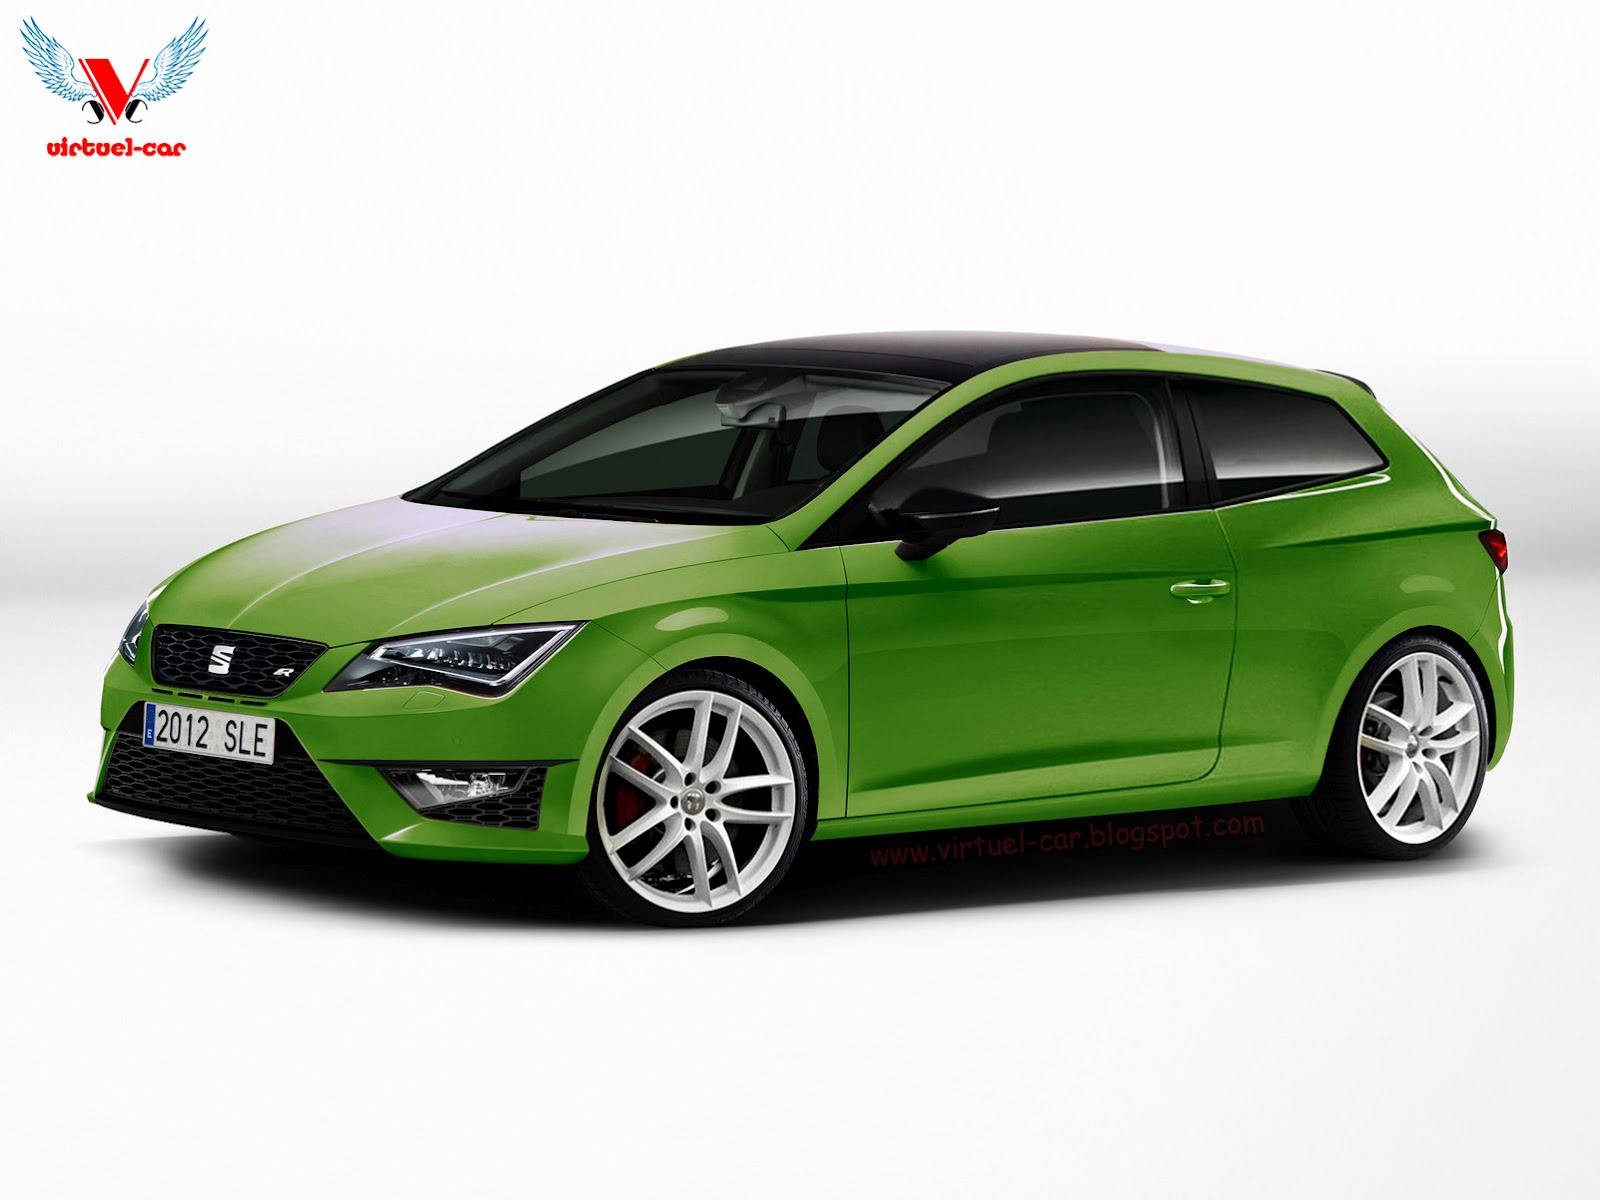 rendering 2013 seat leon cupra r 3 door garage car. Black Bedroom Furniture Sets. Home Design Ideas